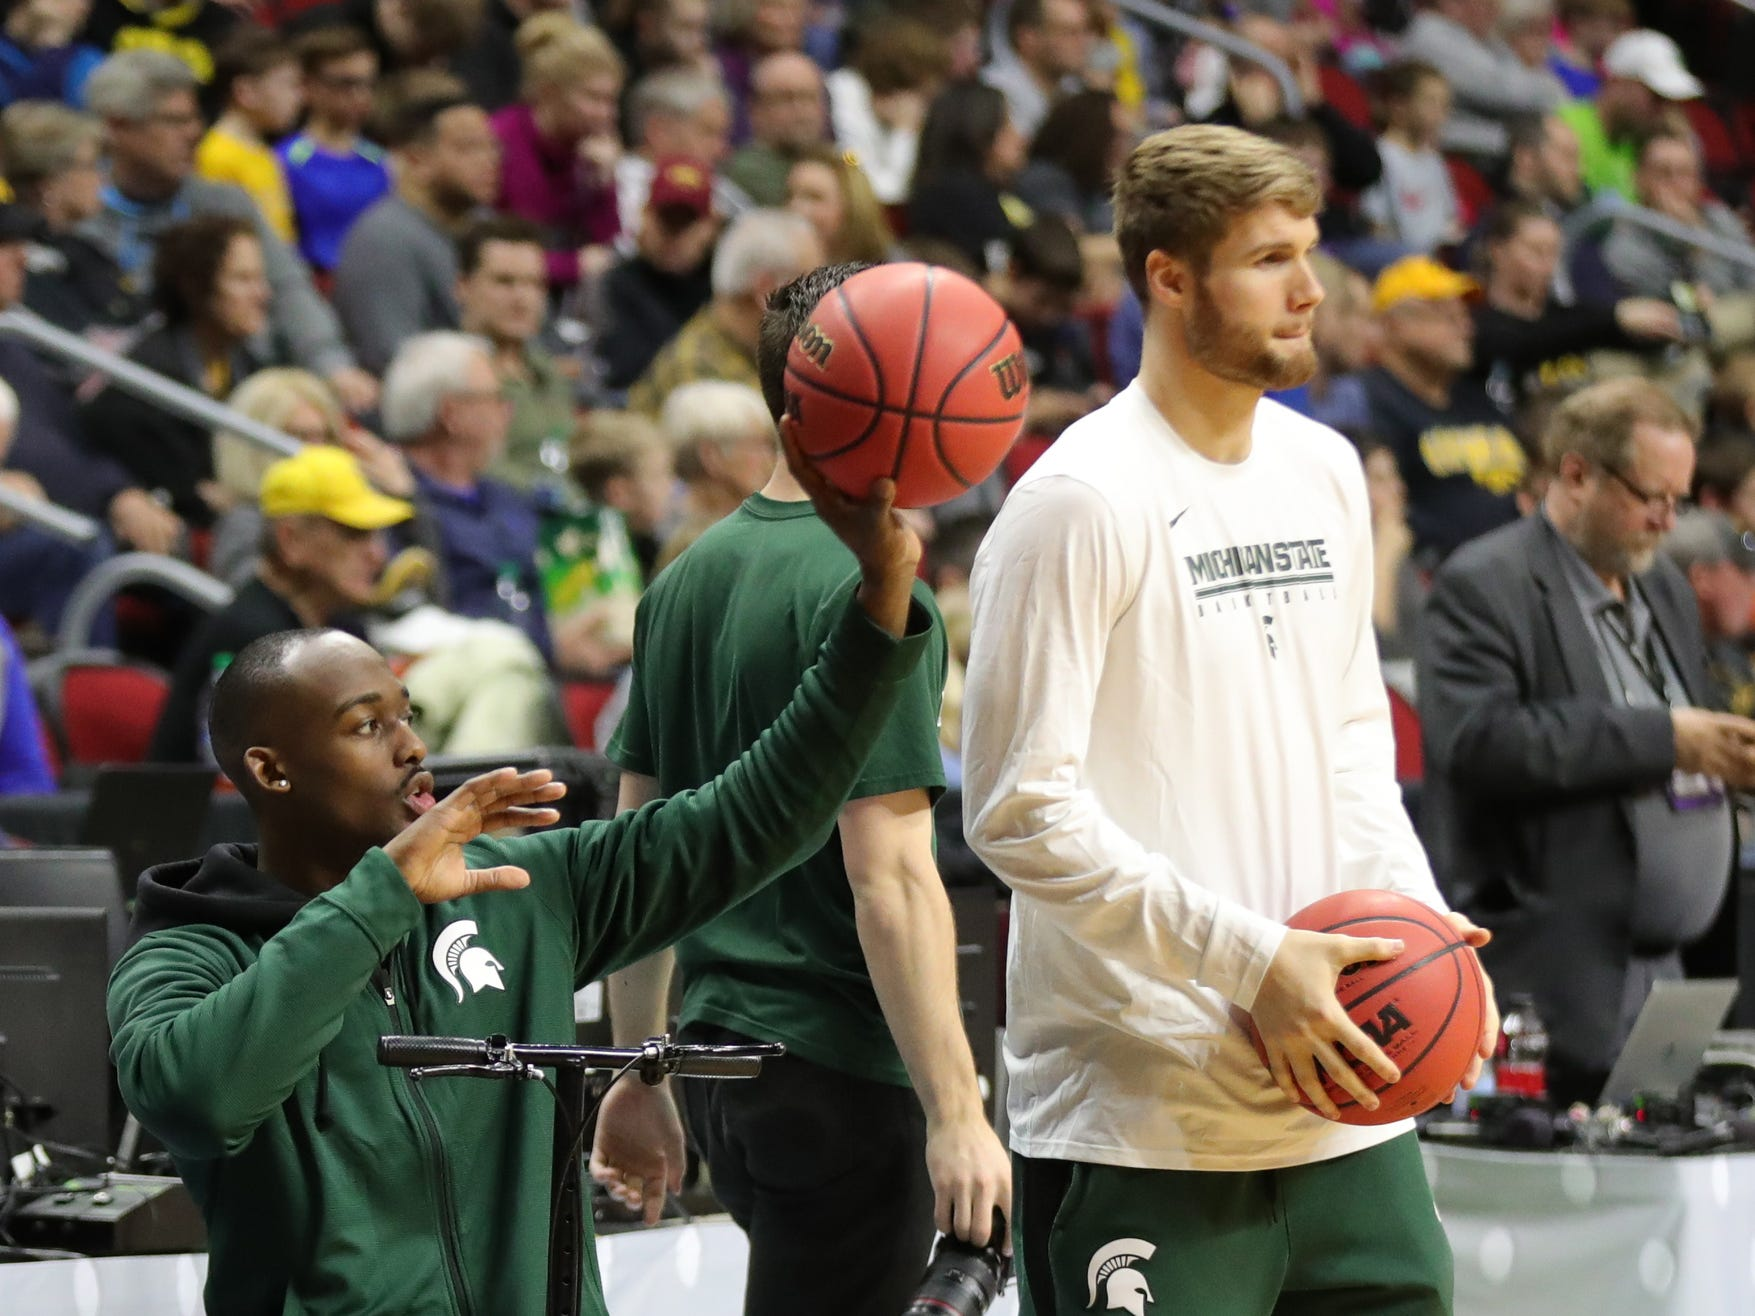 Injured Michigan State players Joshua Langford and Kyle Ahrens watch drills as the team prepares for the first-round NCAA tournament game against Michigan State on Wednesday, March 20, 2019 at Wells Fargo Arena in Des Moines, Iowa.